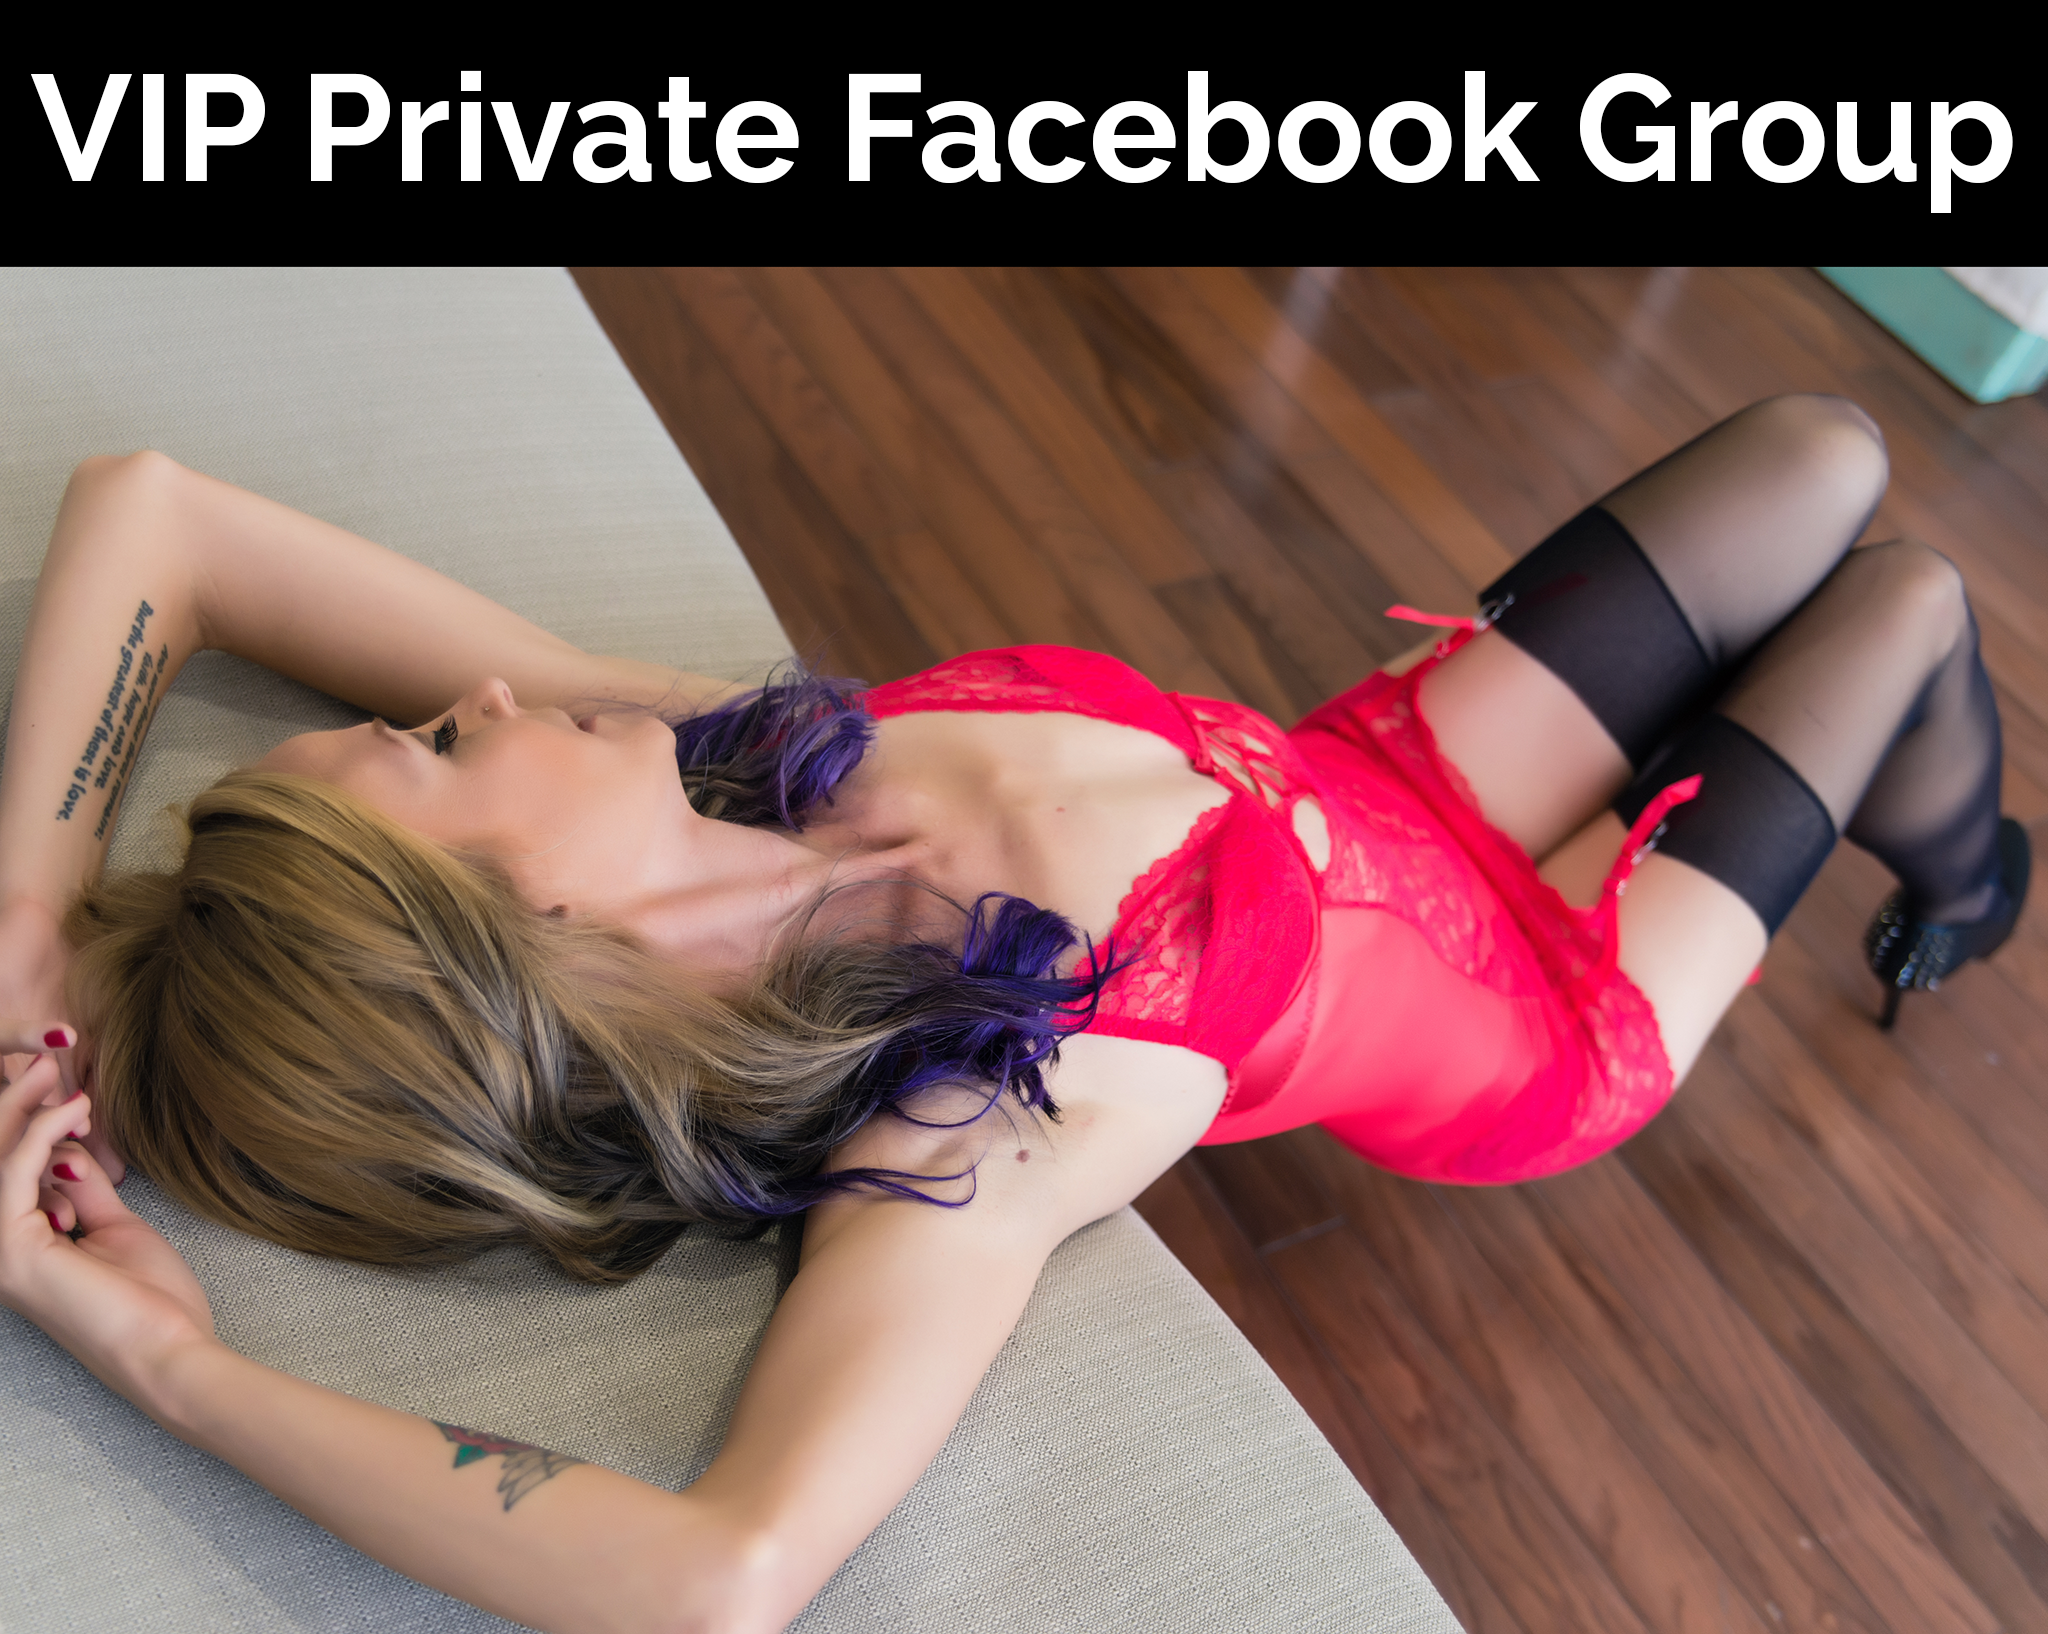 VIP Private Facebook Group